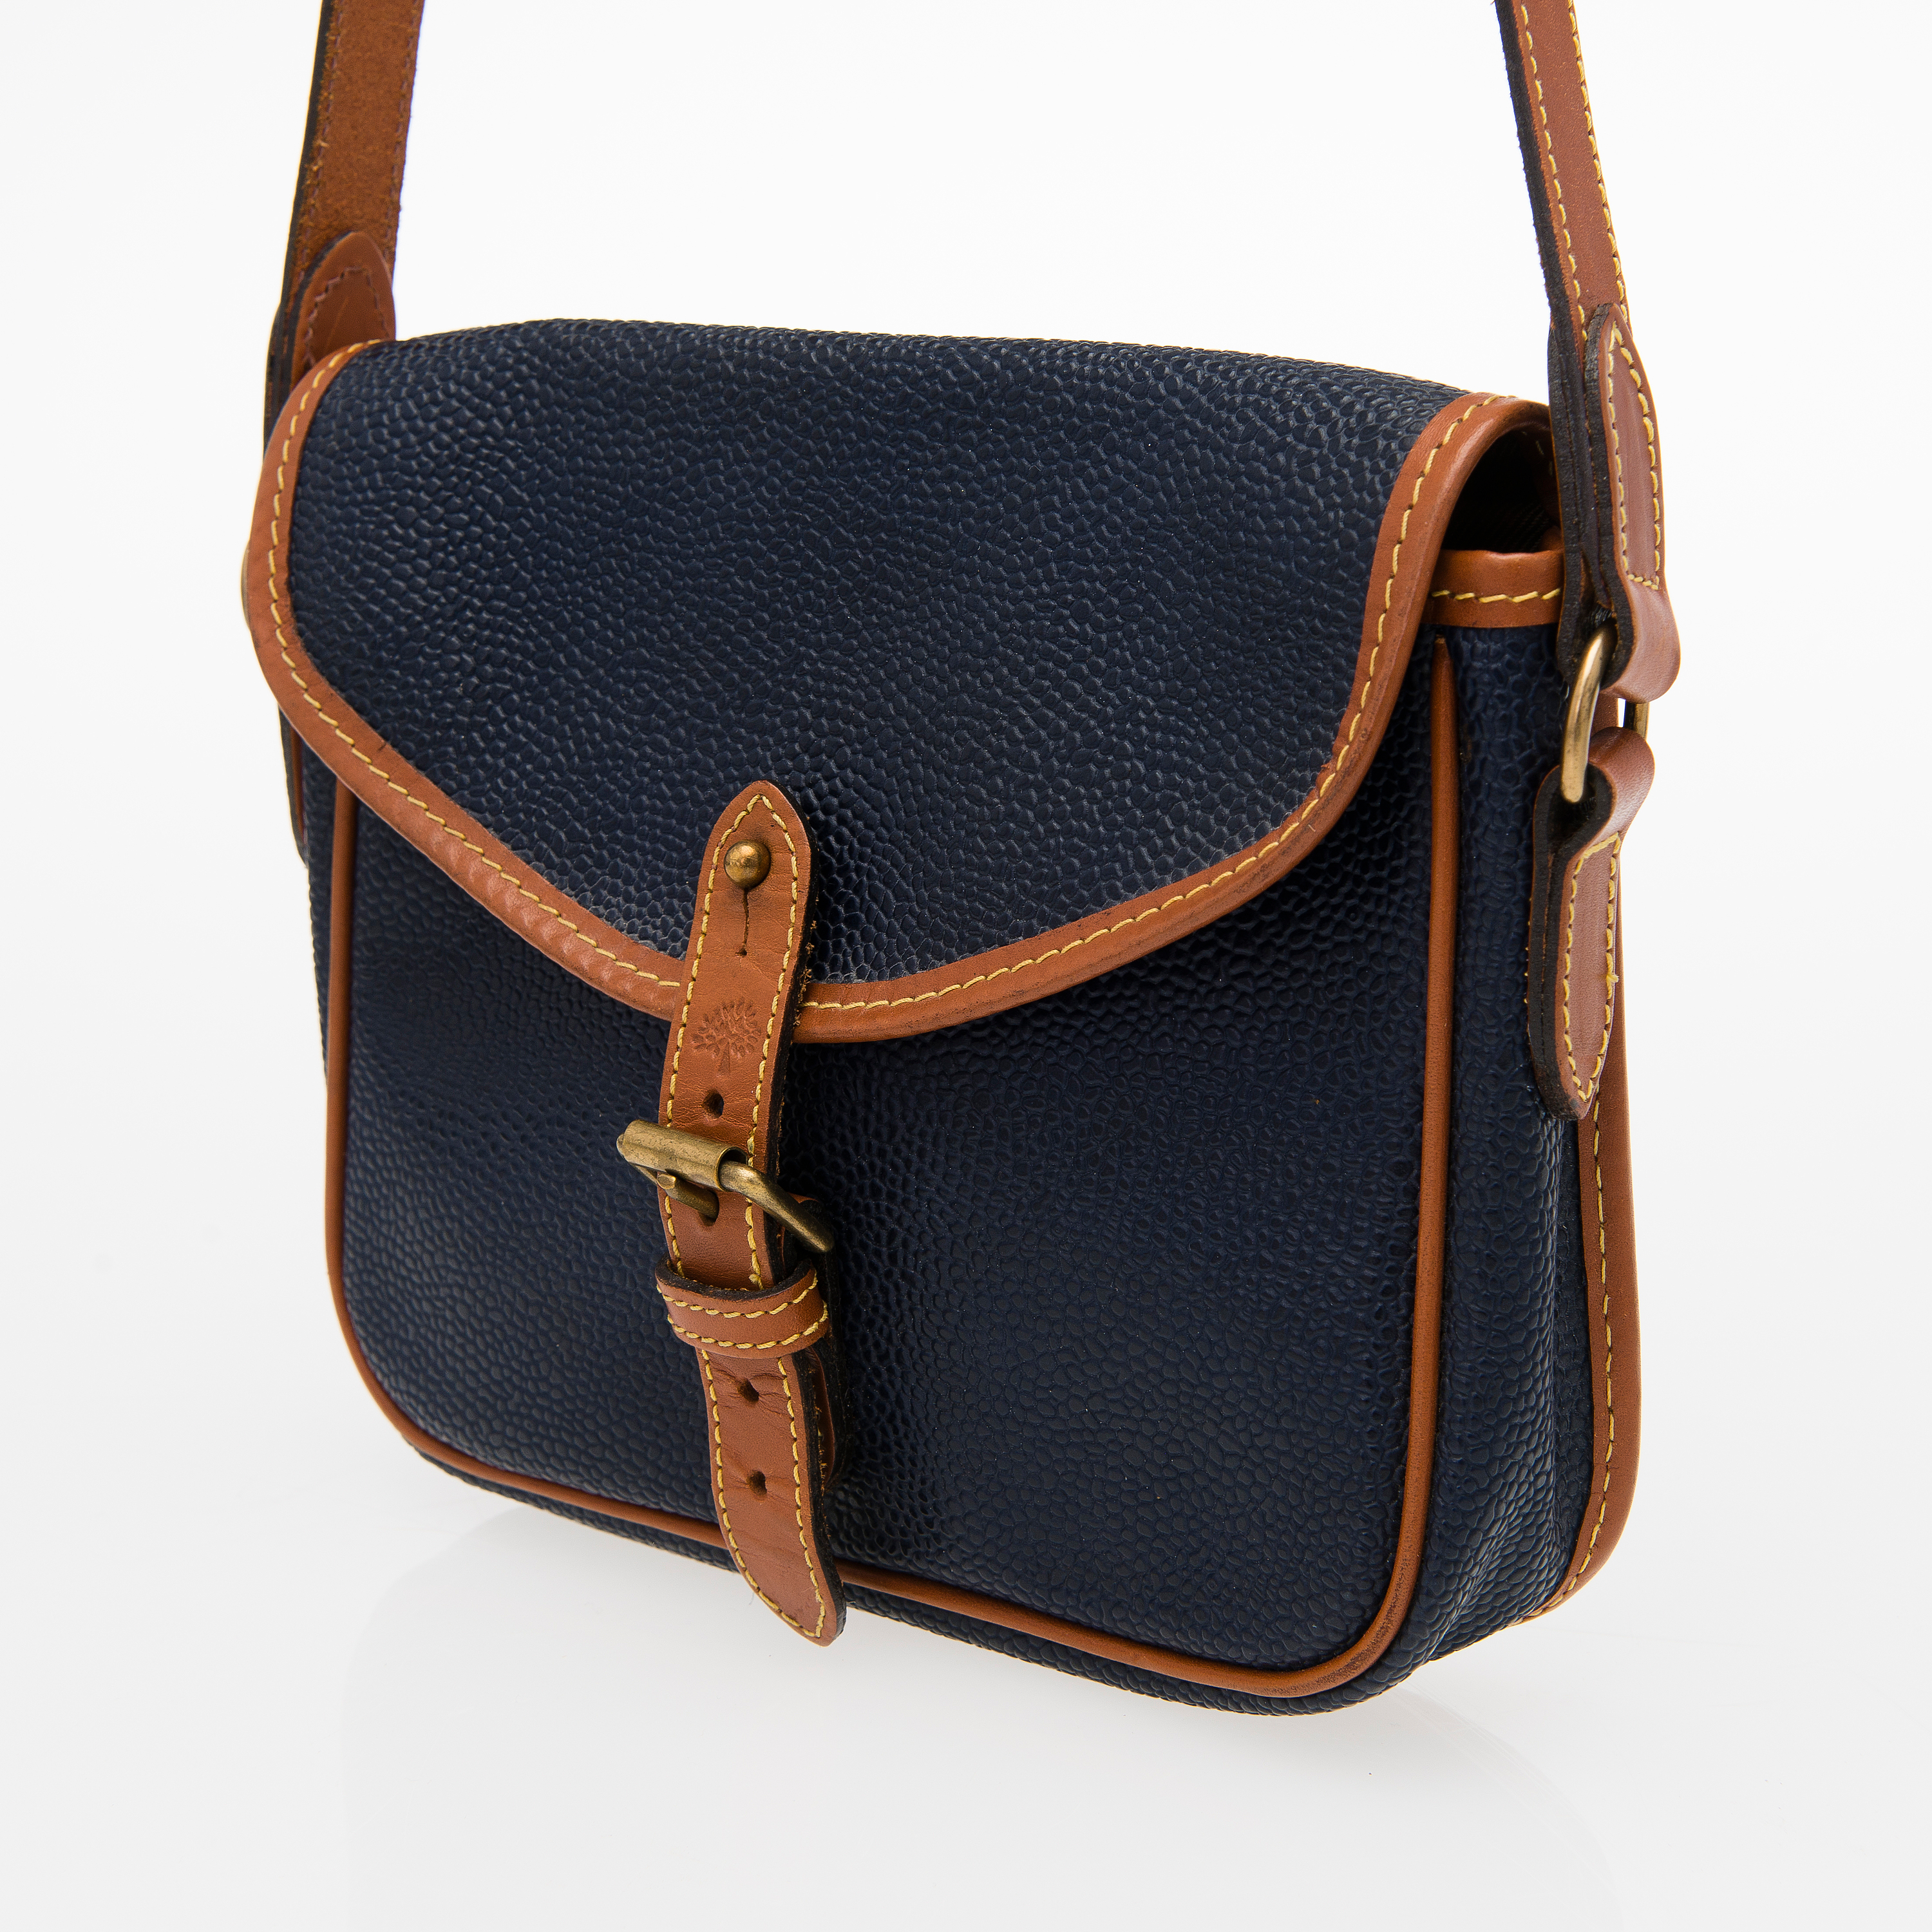 8608703e5a5 reduced mulberry bayswater grained leather tote a2160 24439; spain mulberry  vintage blue scotchgrain crossover bag. bukowskis 5bf99 98565